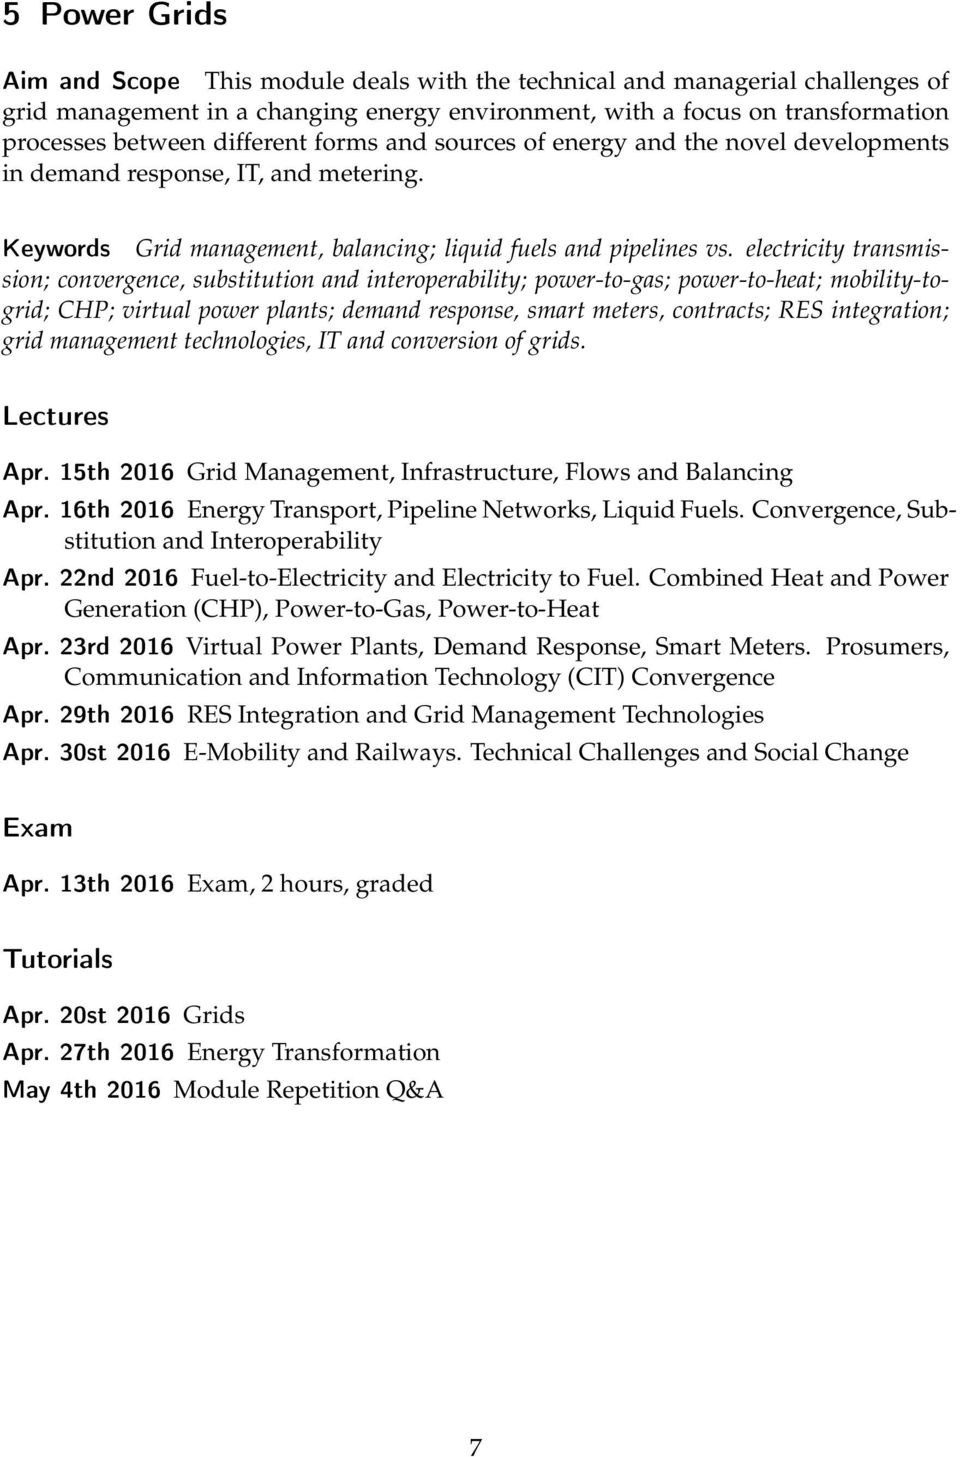 electricity transmission; convergence, substitution and interoperability; power-to-gas; power-to-heat; mobility-togrid; CHP; virtual power plants; demand response, smart meters, contracts; RES